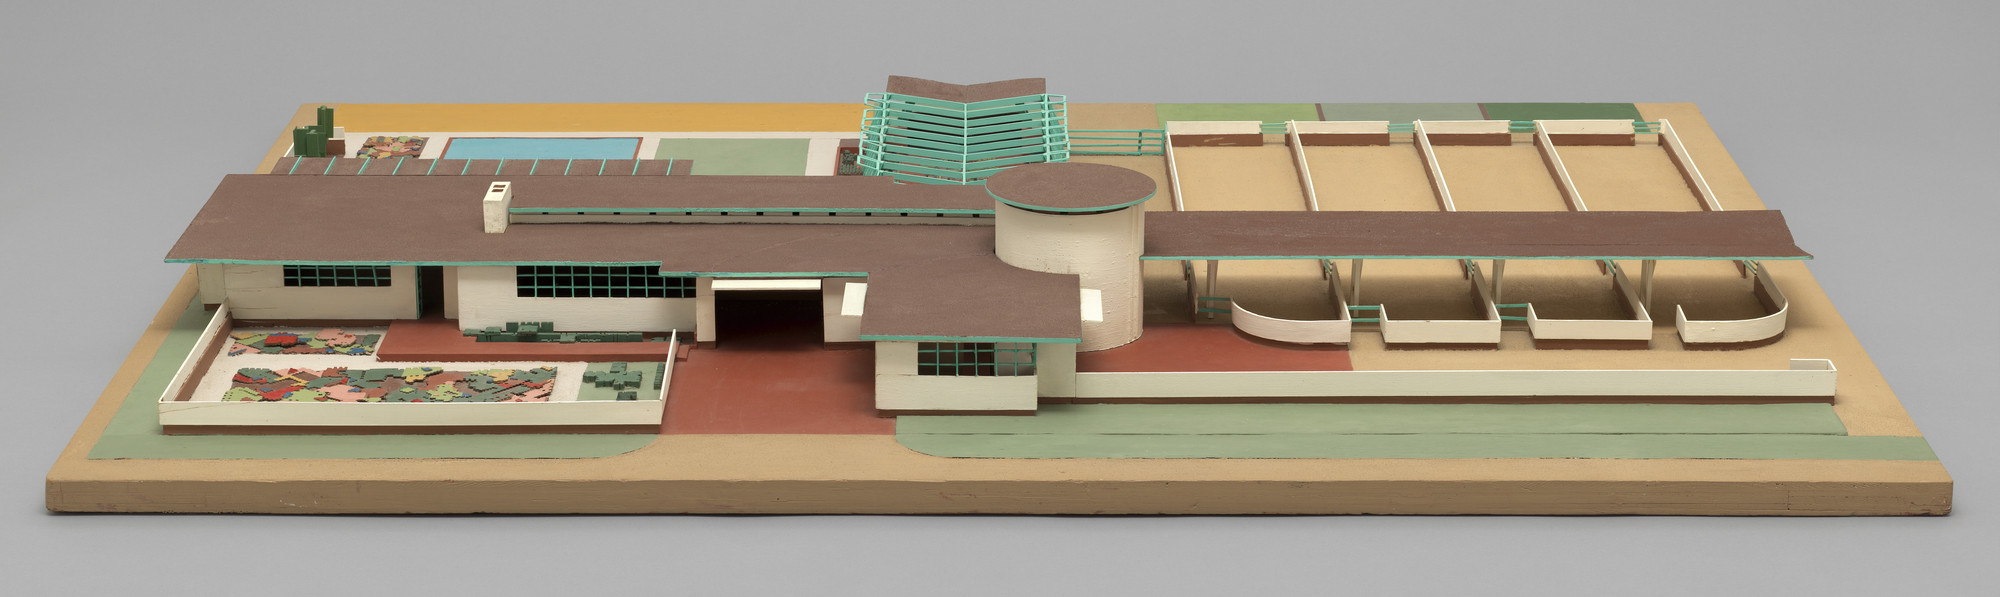 Frank Lloyd Wright. Davidson Little Farms Unit Project (Model). 1932–1933